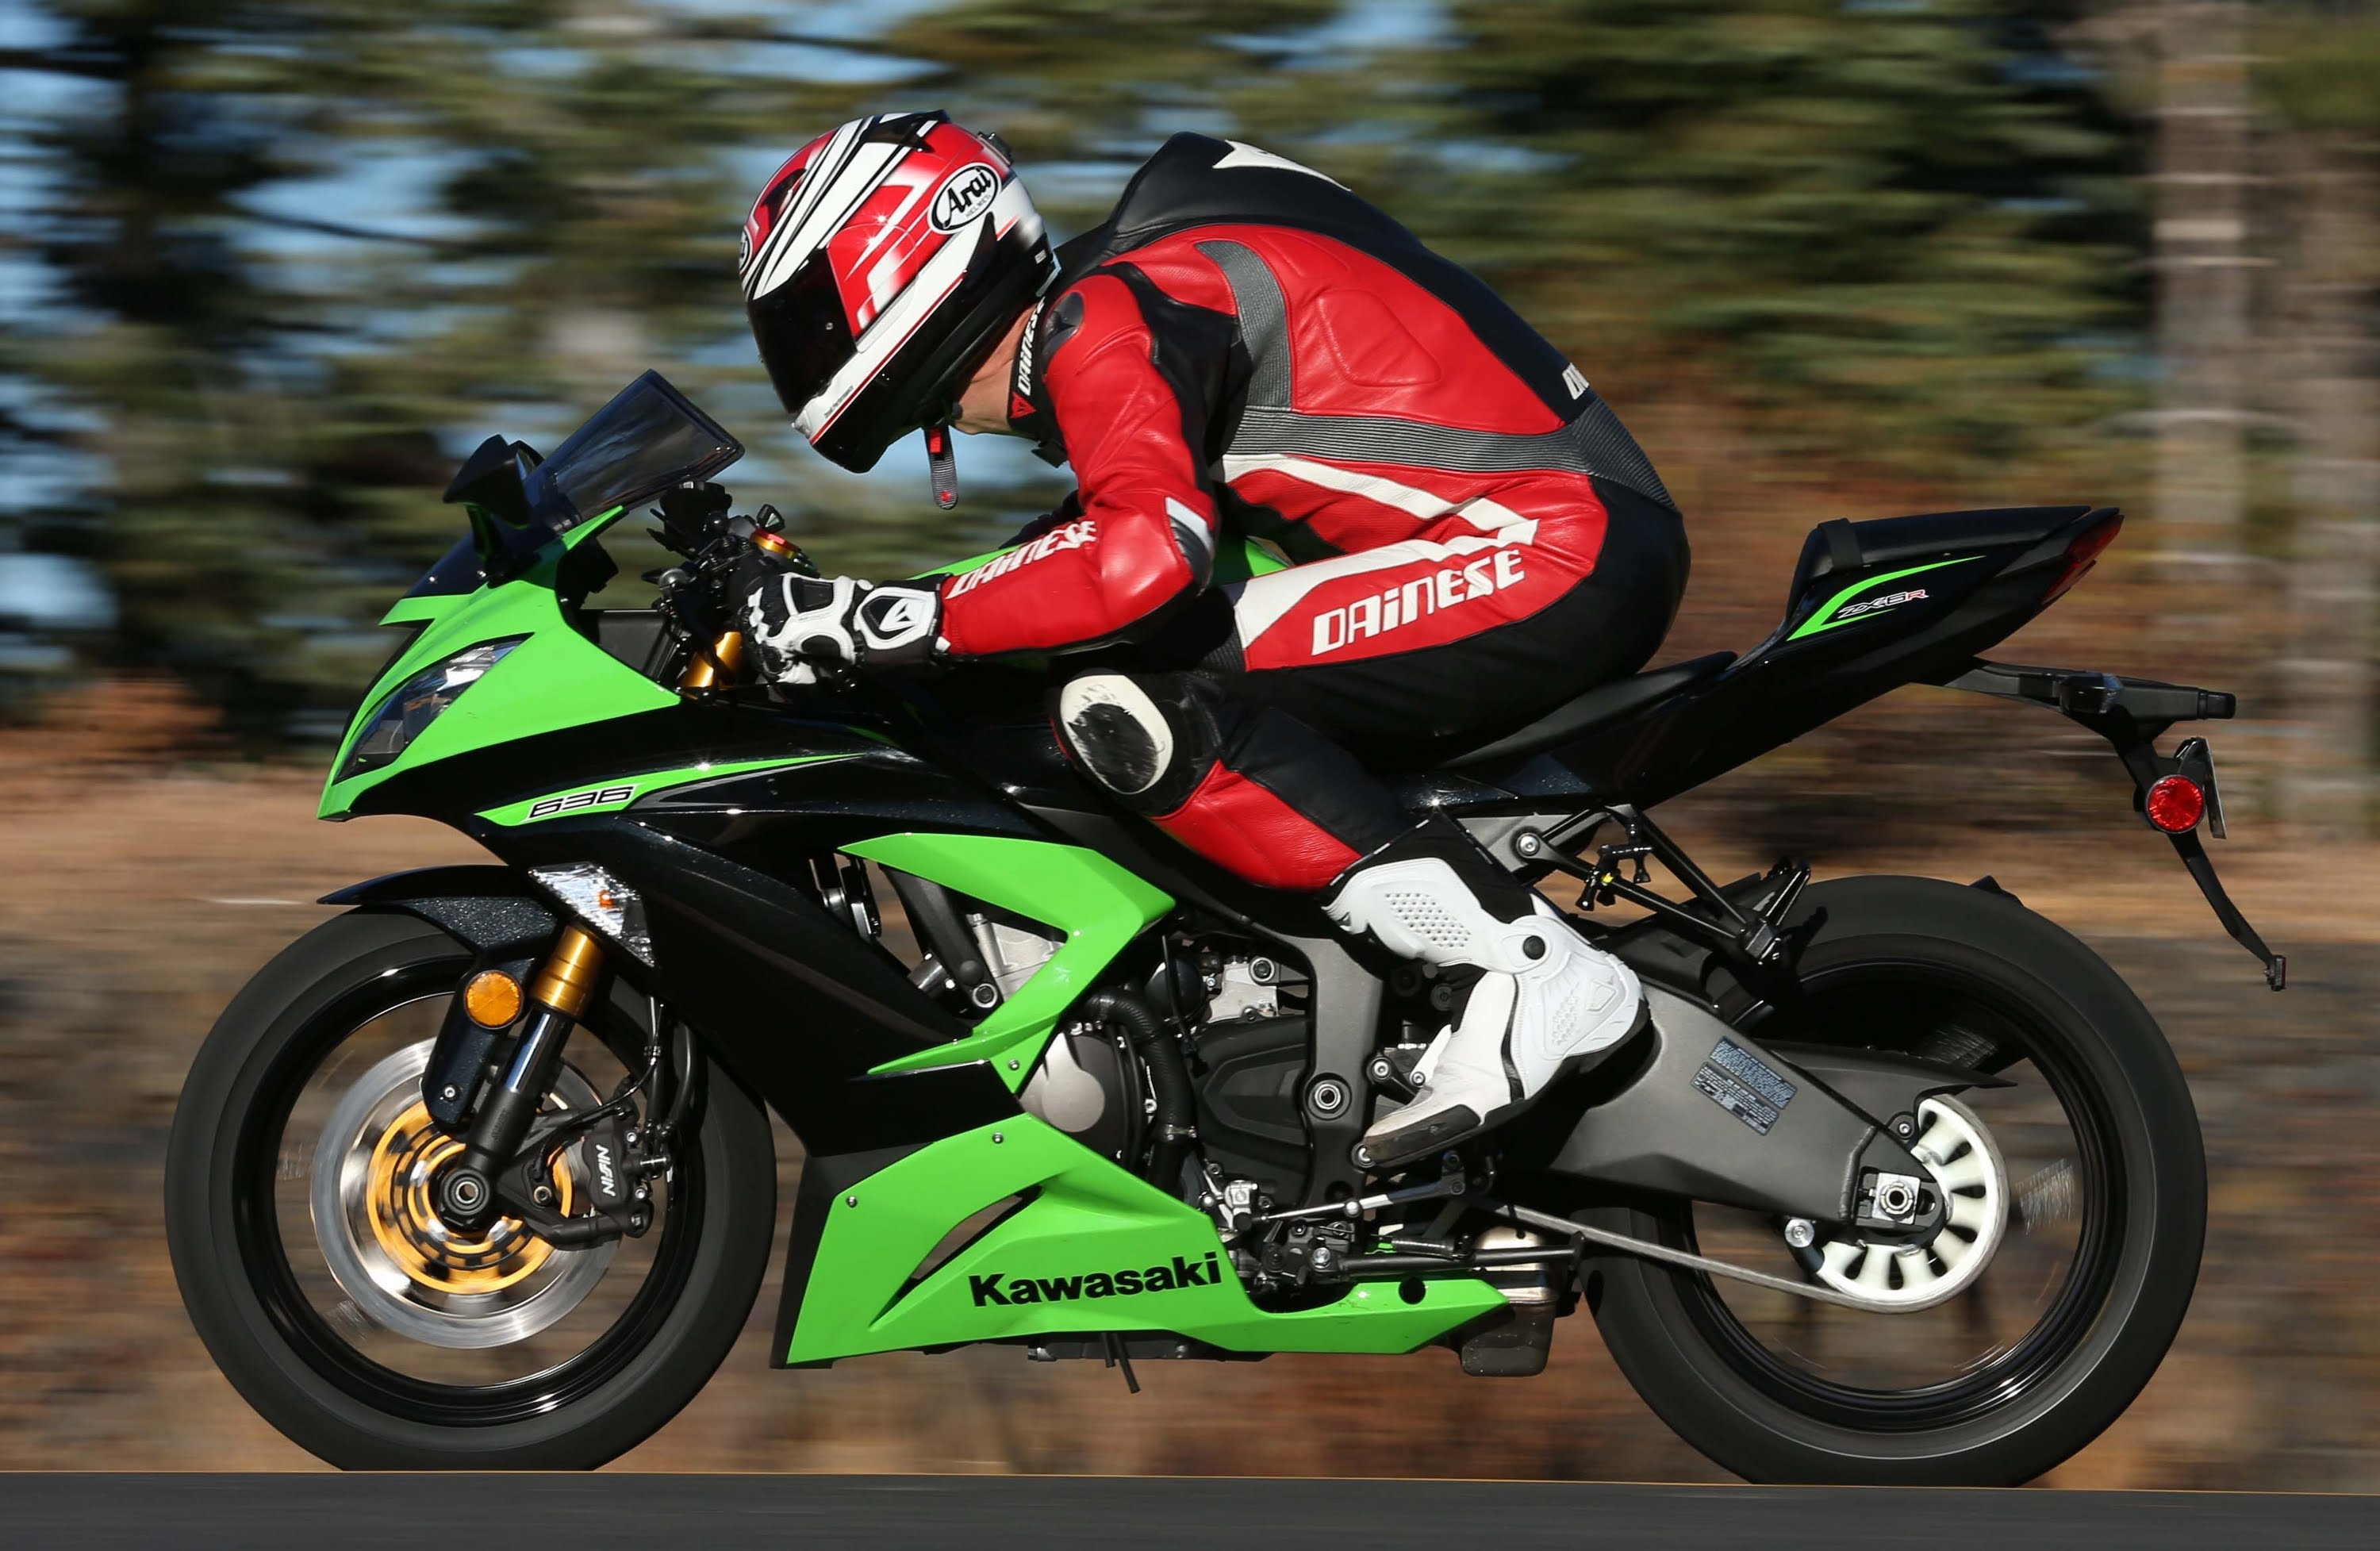 2013 kawasaki ninja zx 6r 636 pics specs and information. Black Bedroom Furniture Sets. Home Design Ideas